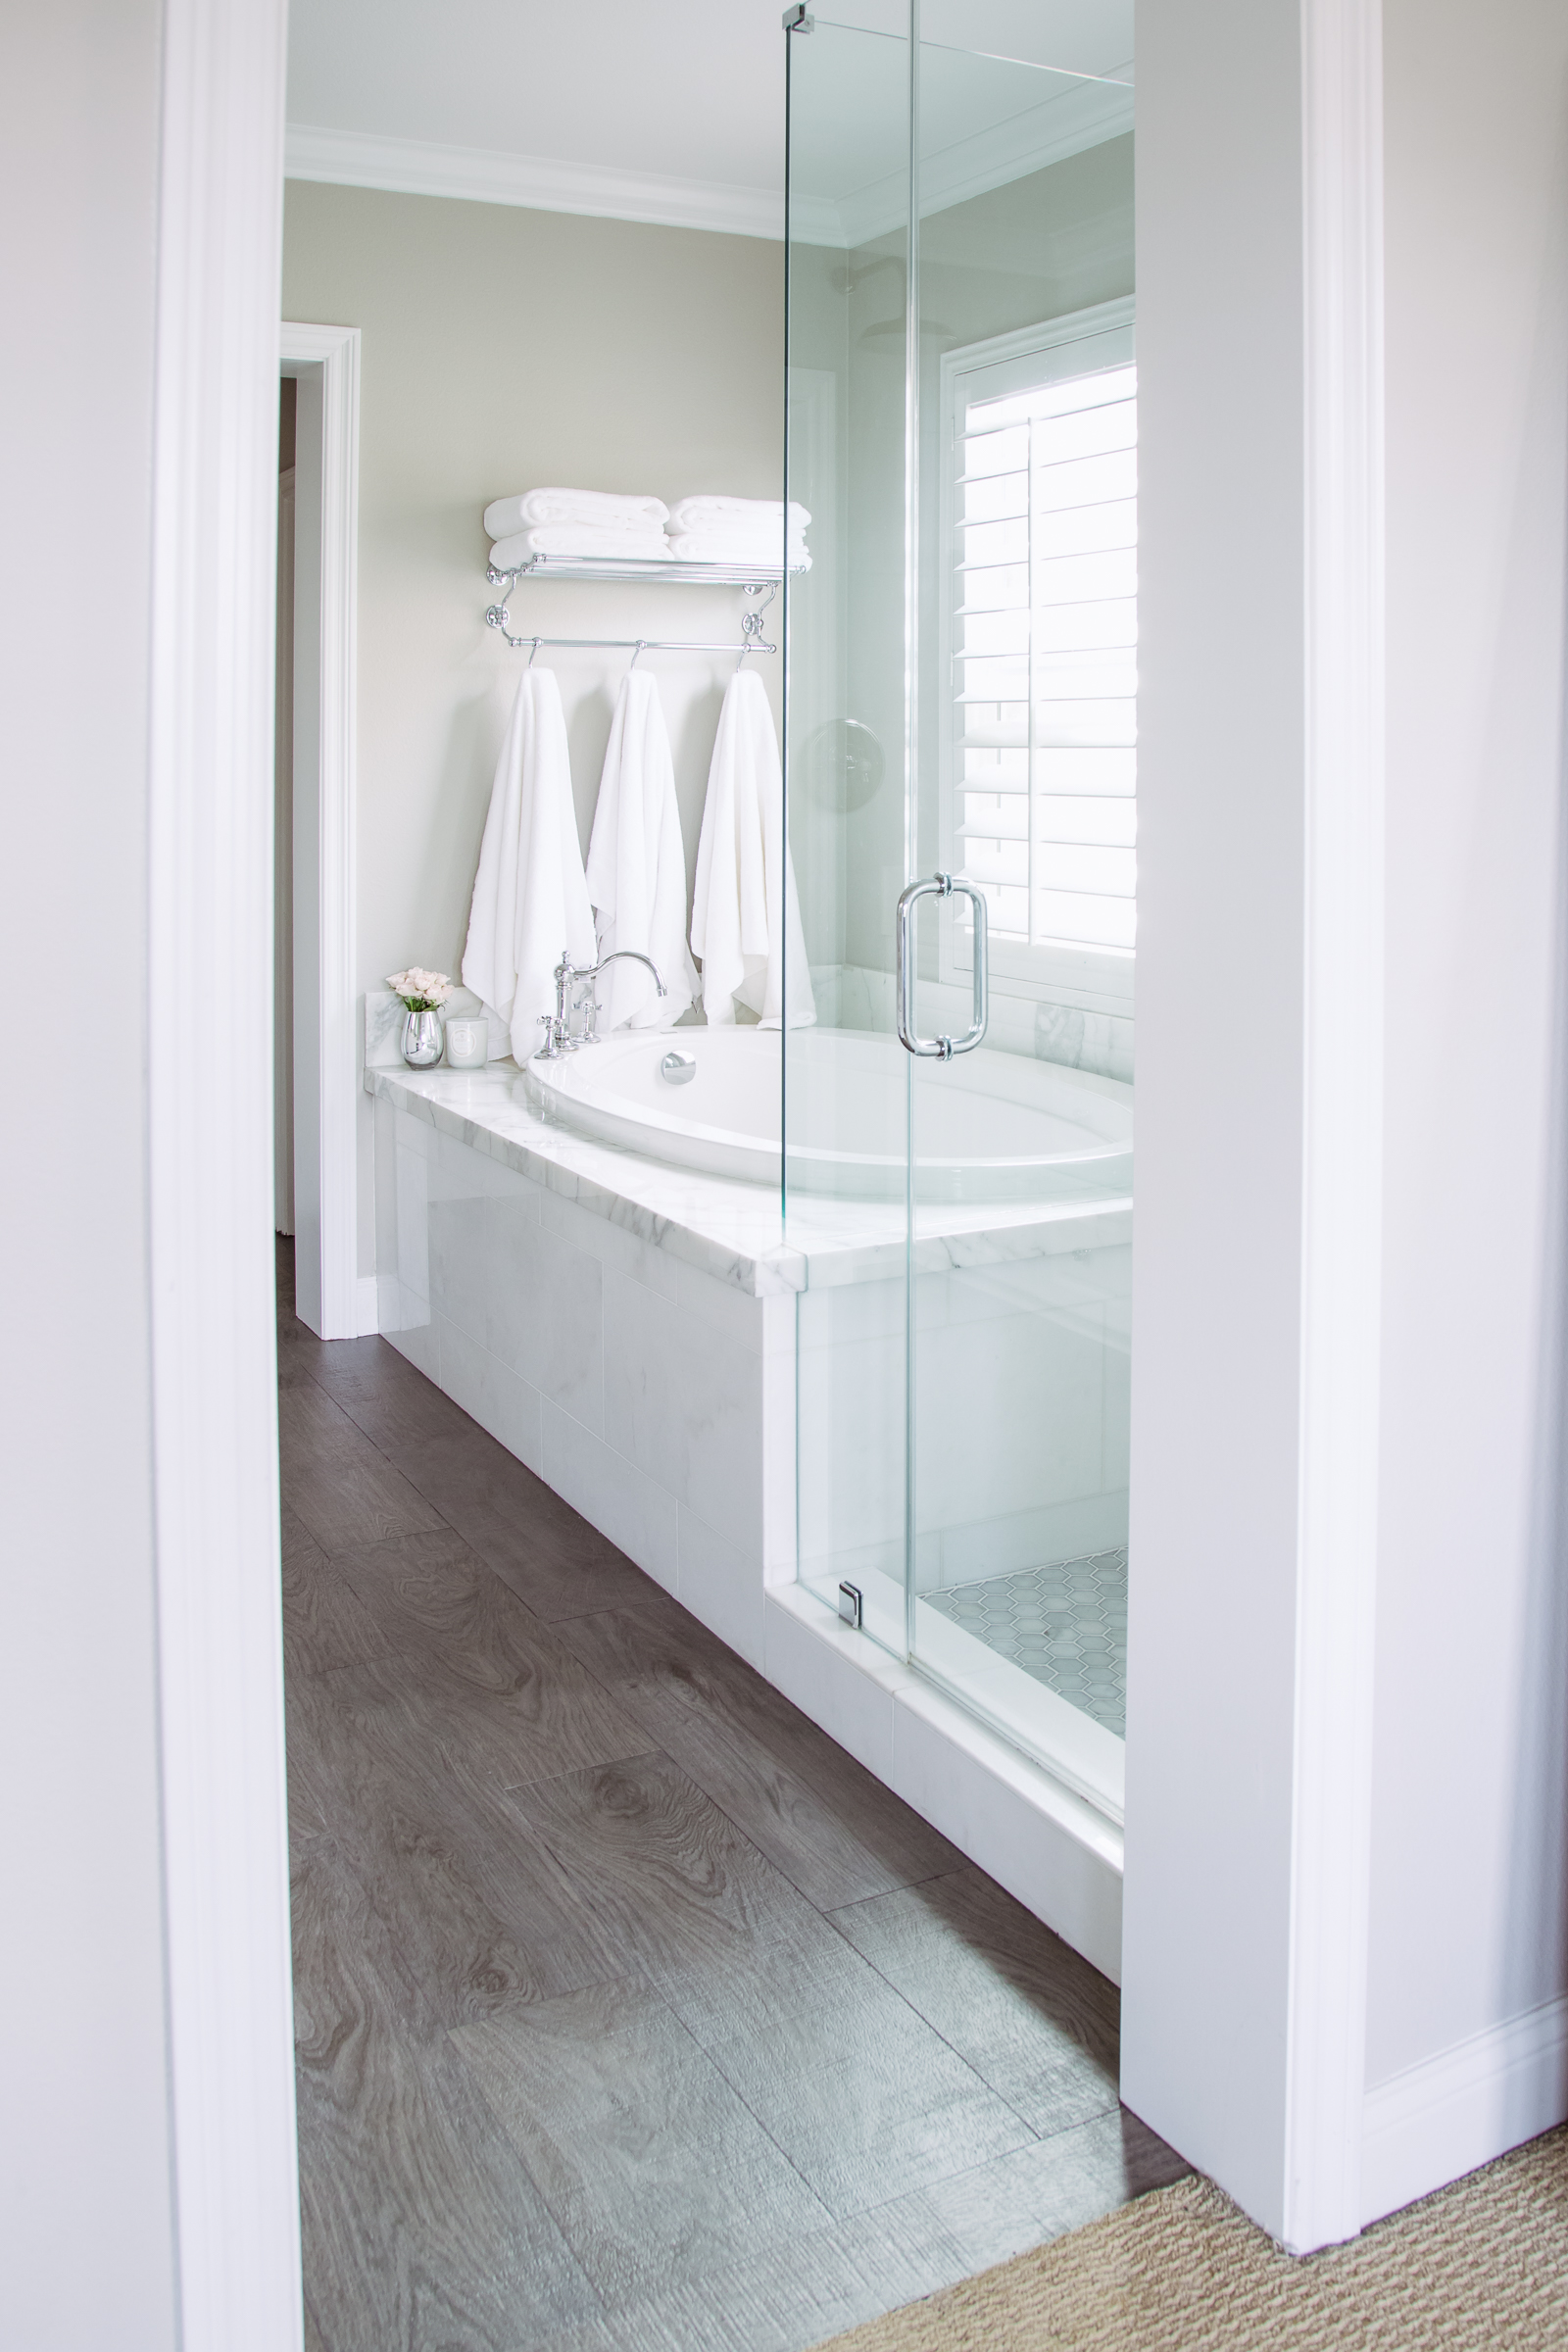 Our Finished Master Bathroom Remodel - Andee Layne on Master Bathroom Remodel Ideas  id=11405